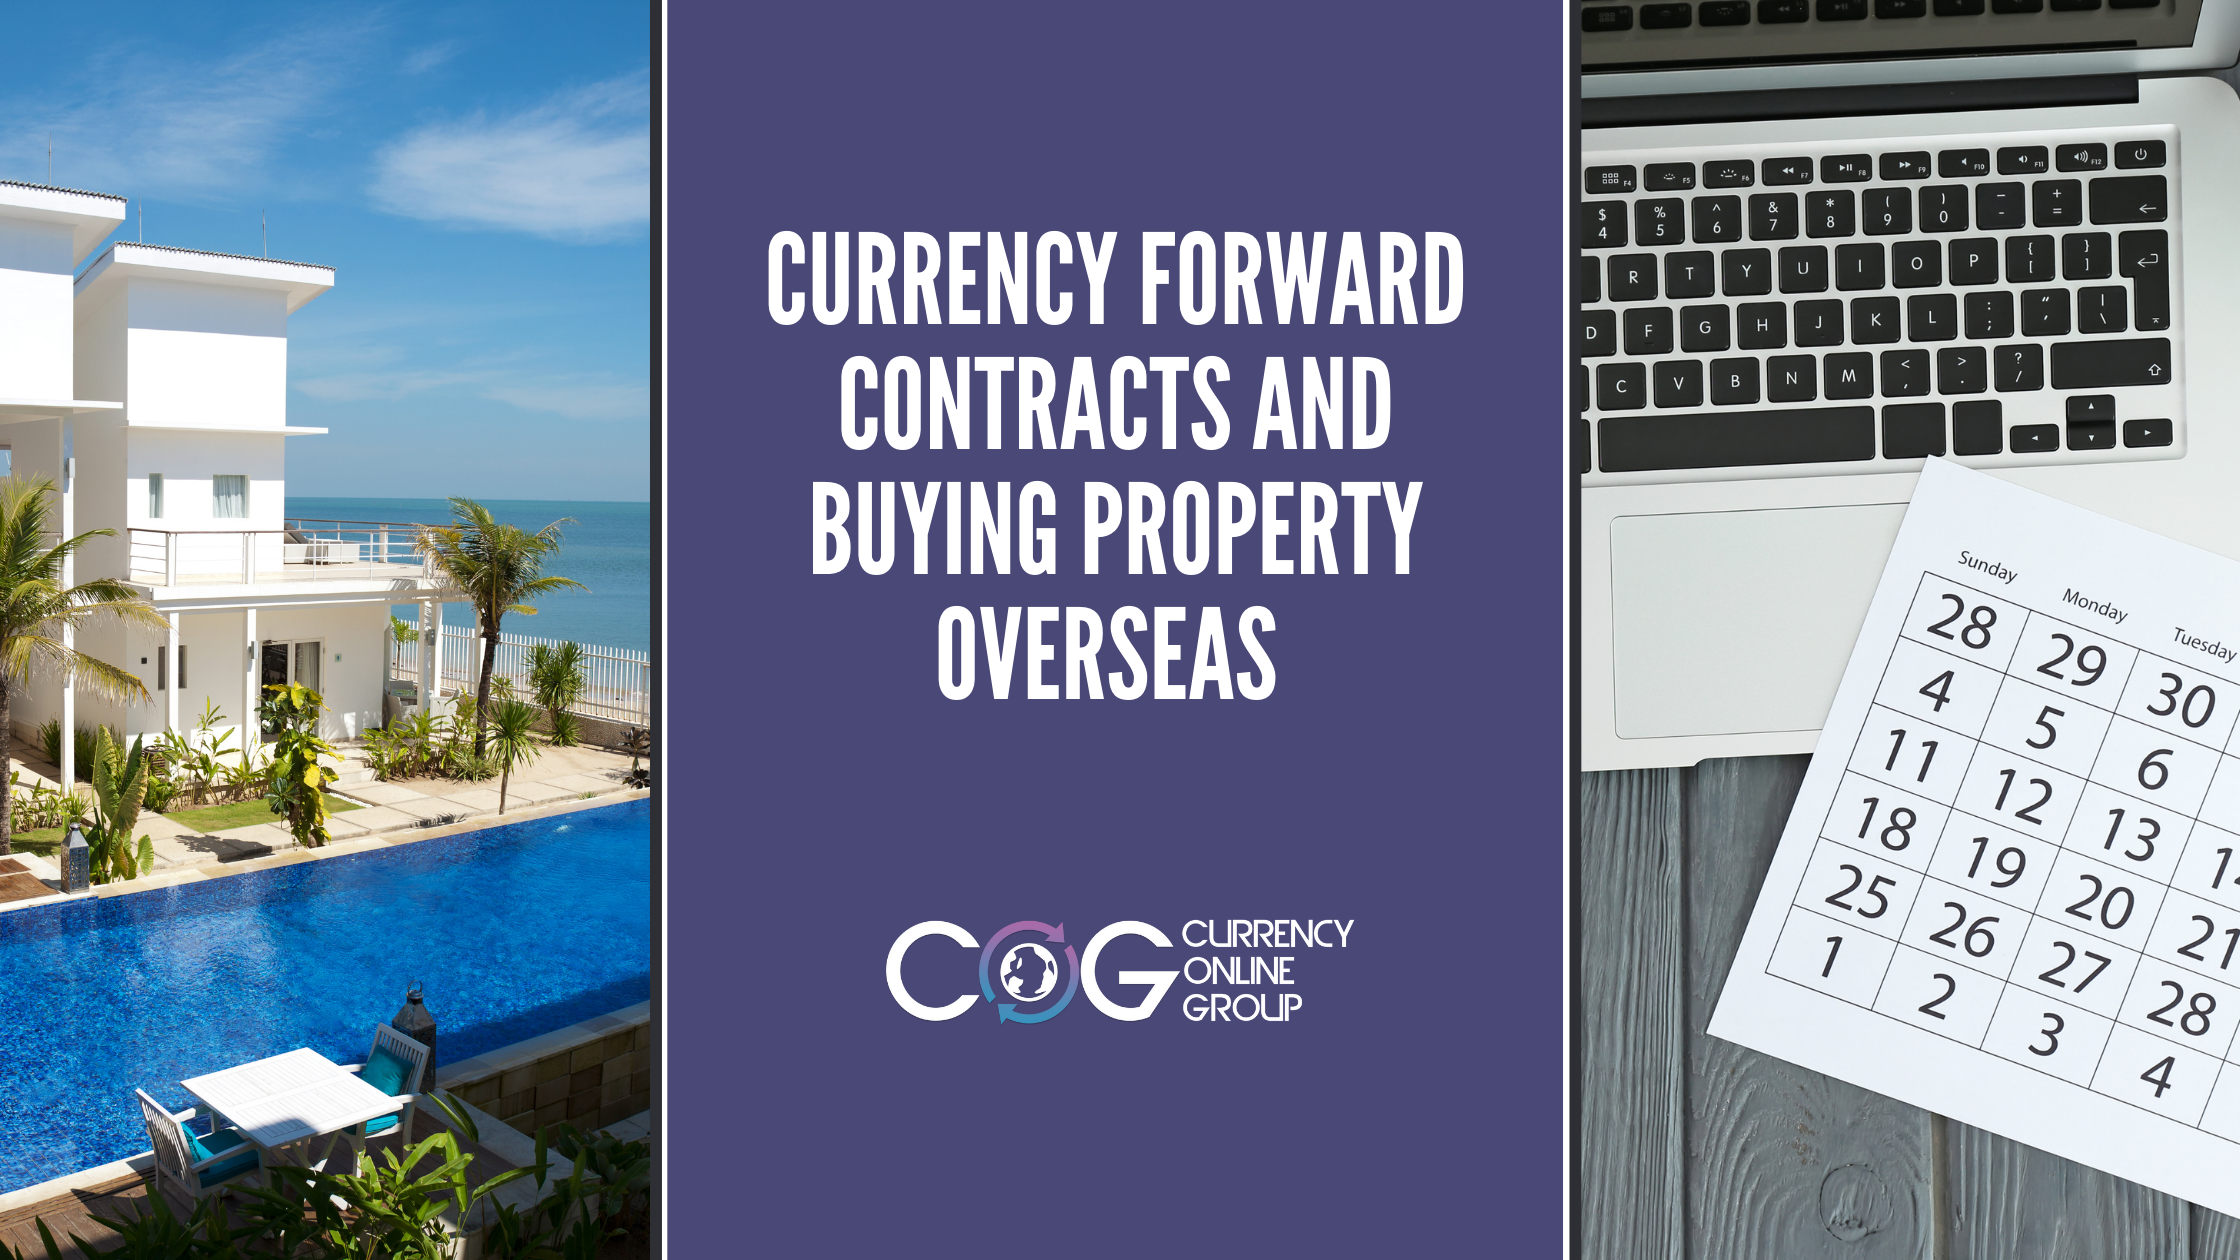 Currency Foward Contracts and Buying Property Overseas